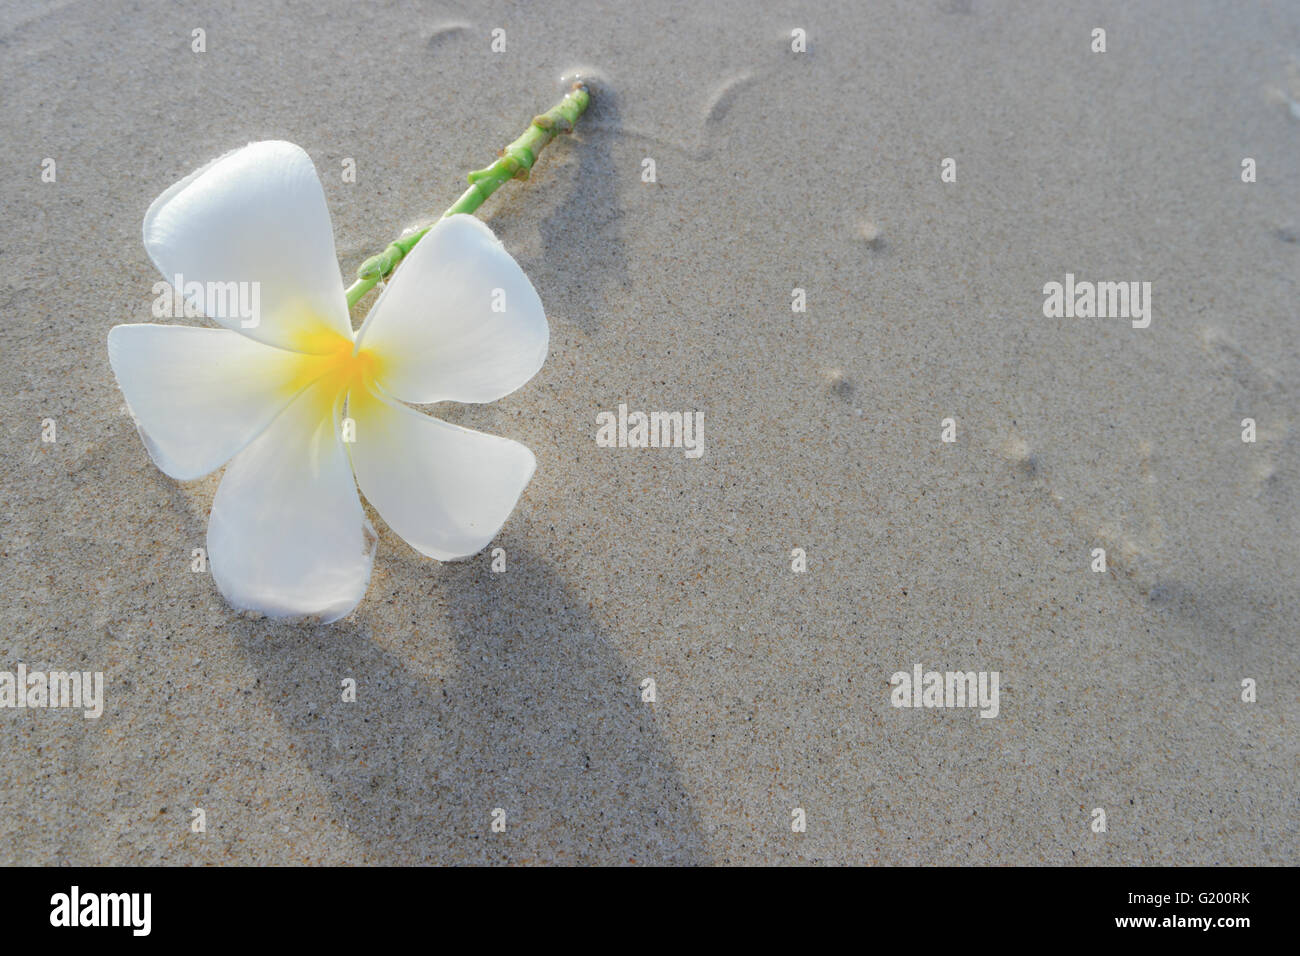 White frangipani on the surface of the sand. Stock Photo